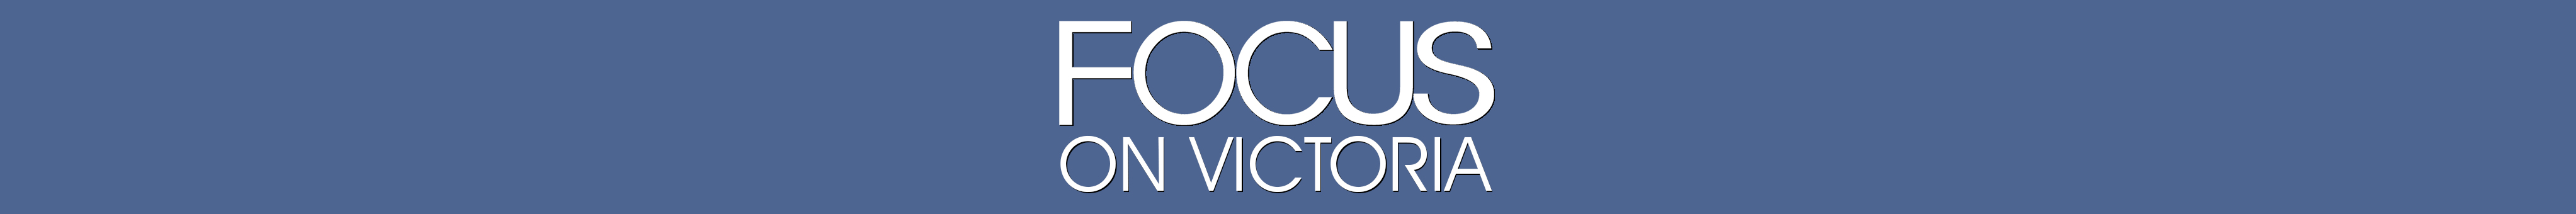 Focus on Victoria